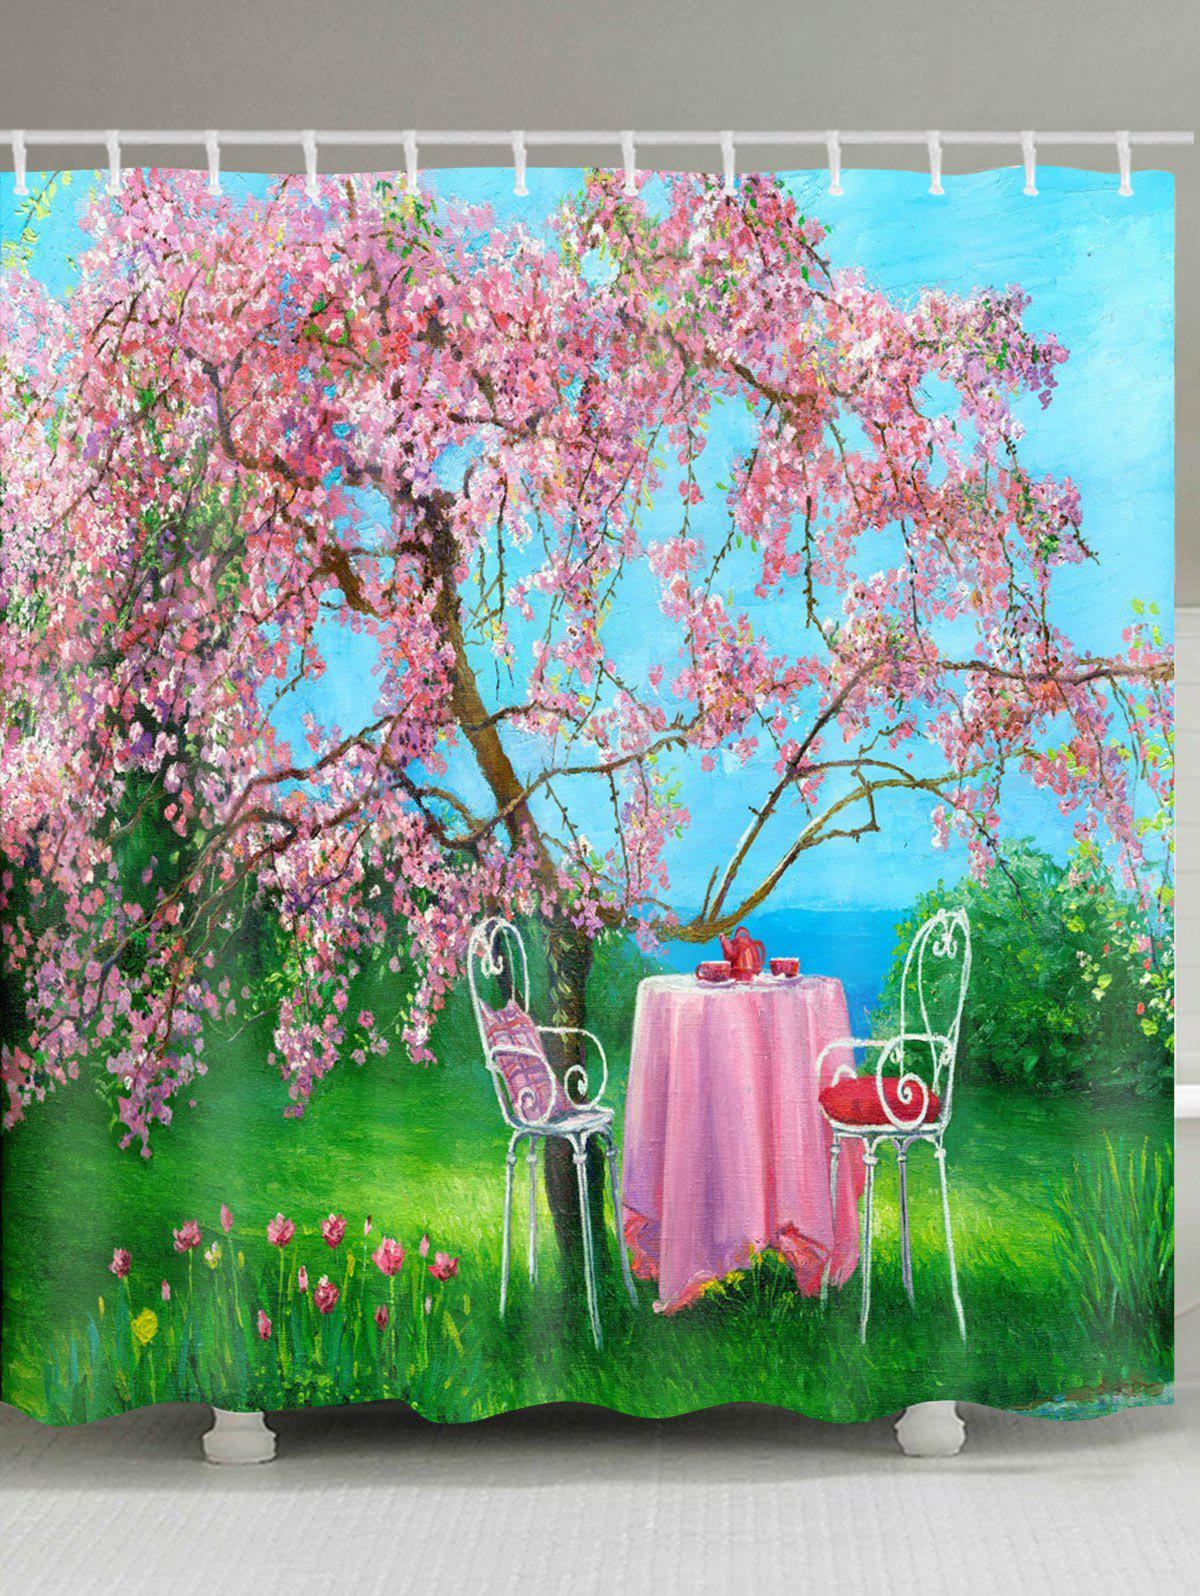 Flower Tree Table Print Waterproof Shower Curtain - COLORMIX W71 INCH * L71 INCH